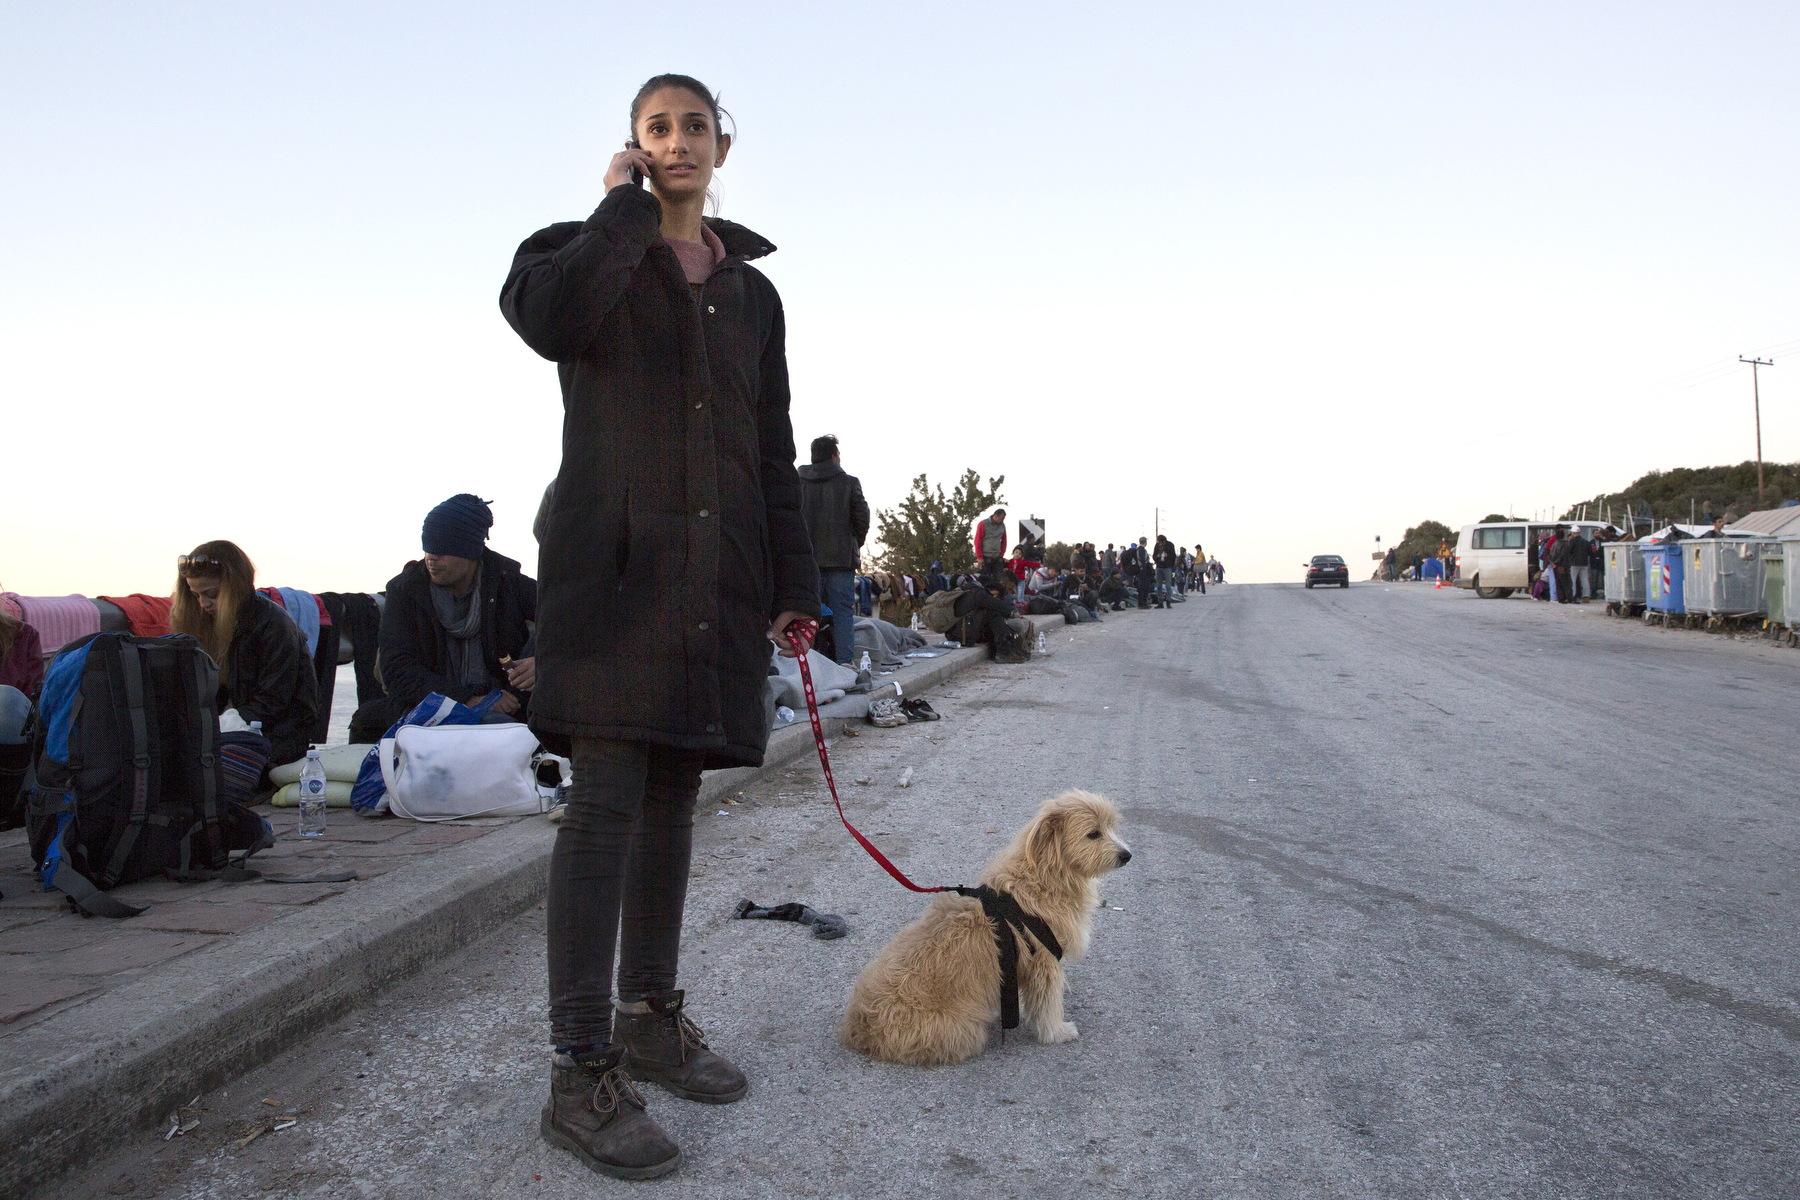 LESBOS, GREECE - NOVEMBER 3: A Syrian refugee makes a phone call home as she holds onto her dog who is making the long journey with her. Colder weather and rough seas continue to cause deaths at sea as thousands travel in overcrowded small rafts. According to the IOM, an estimated 100,000 people landed in Greece, an average of almost 4,500 per day in late October and November. Nearly all of those entering Greece on a boat from Turkey are from the war zones of Syria, Iraq and Afghanistan. (Photo by Paula Bronstein)